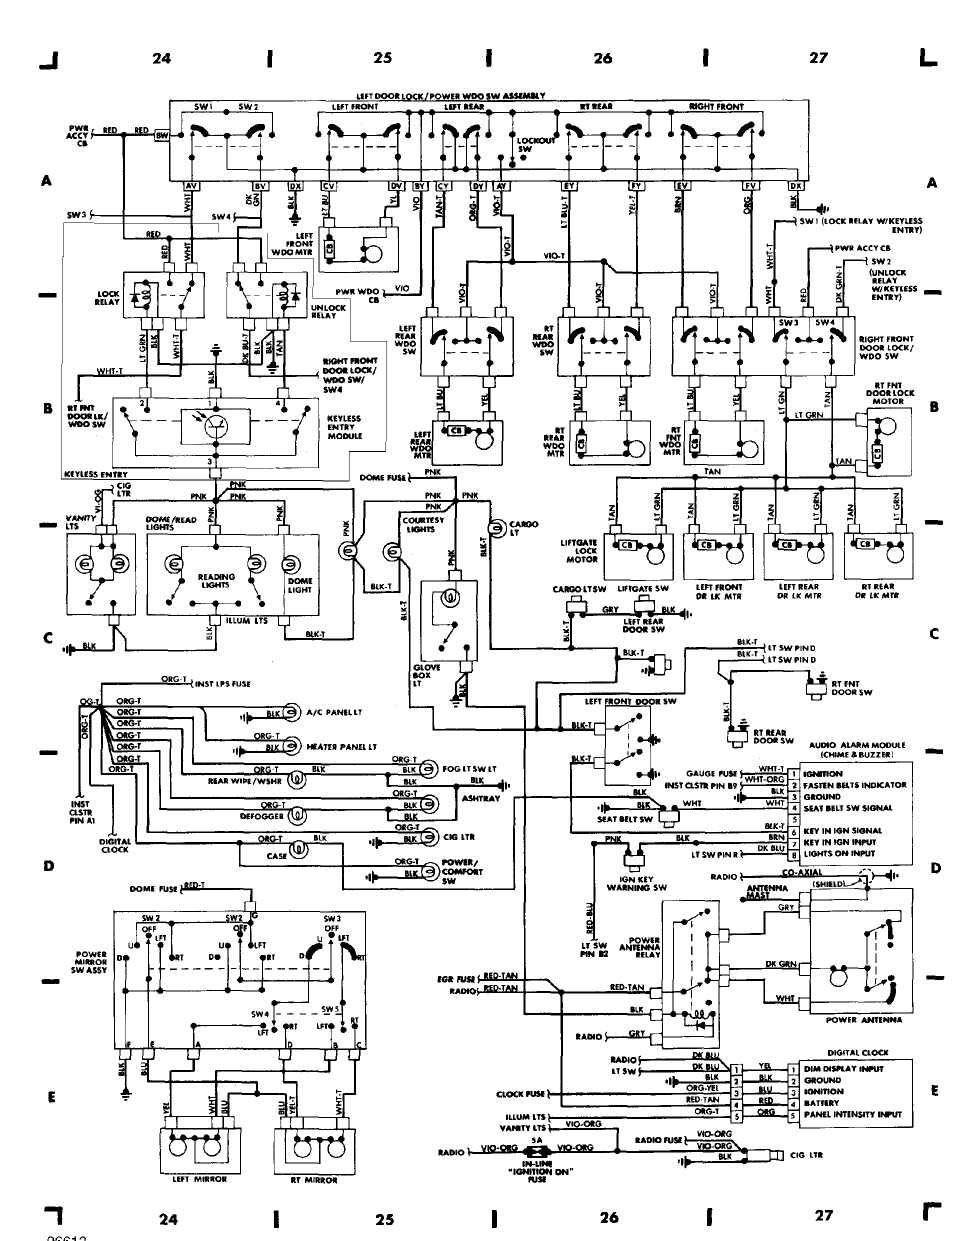 2001 Jeep Xj Wiring Schematic Content Resource Of Wiring Diagram \u2022 2001  Jeep Grand Cherokee Wiring Schematic 2001 Jeep Wrangler Wiring Schematic